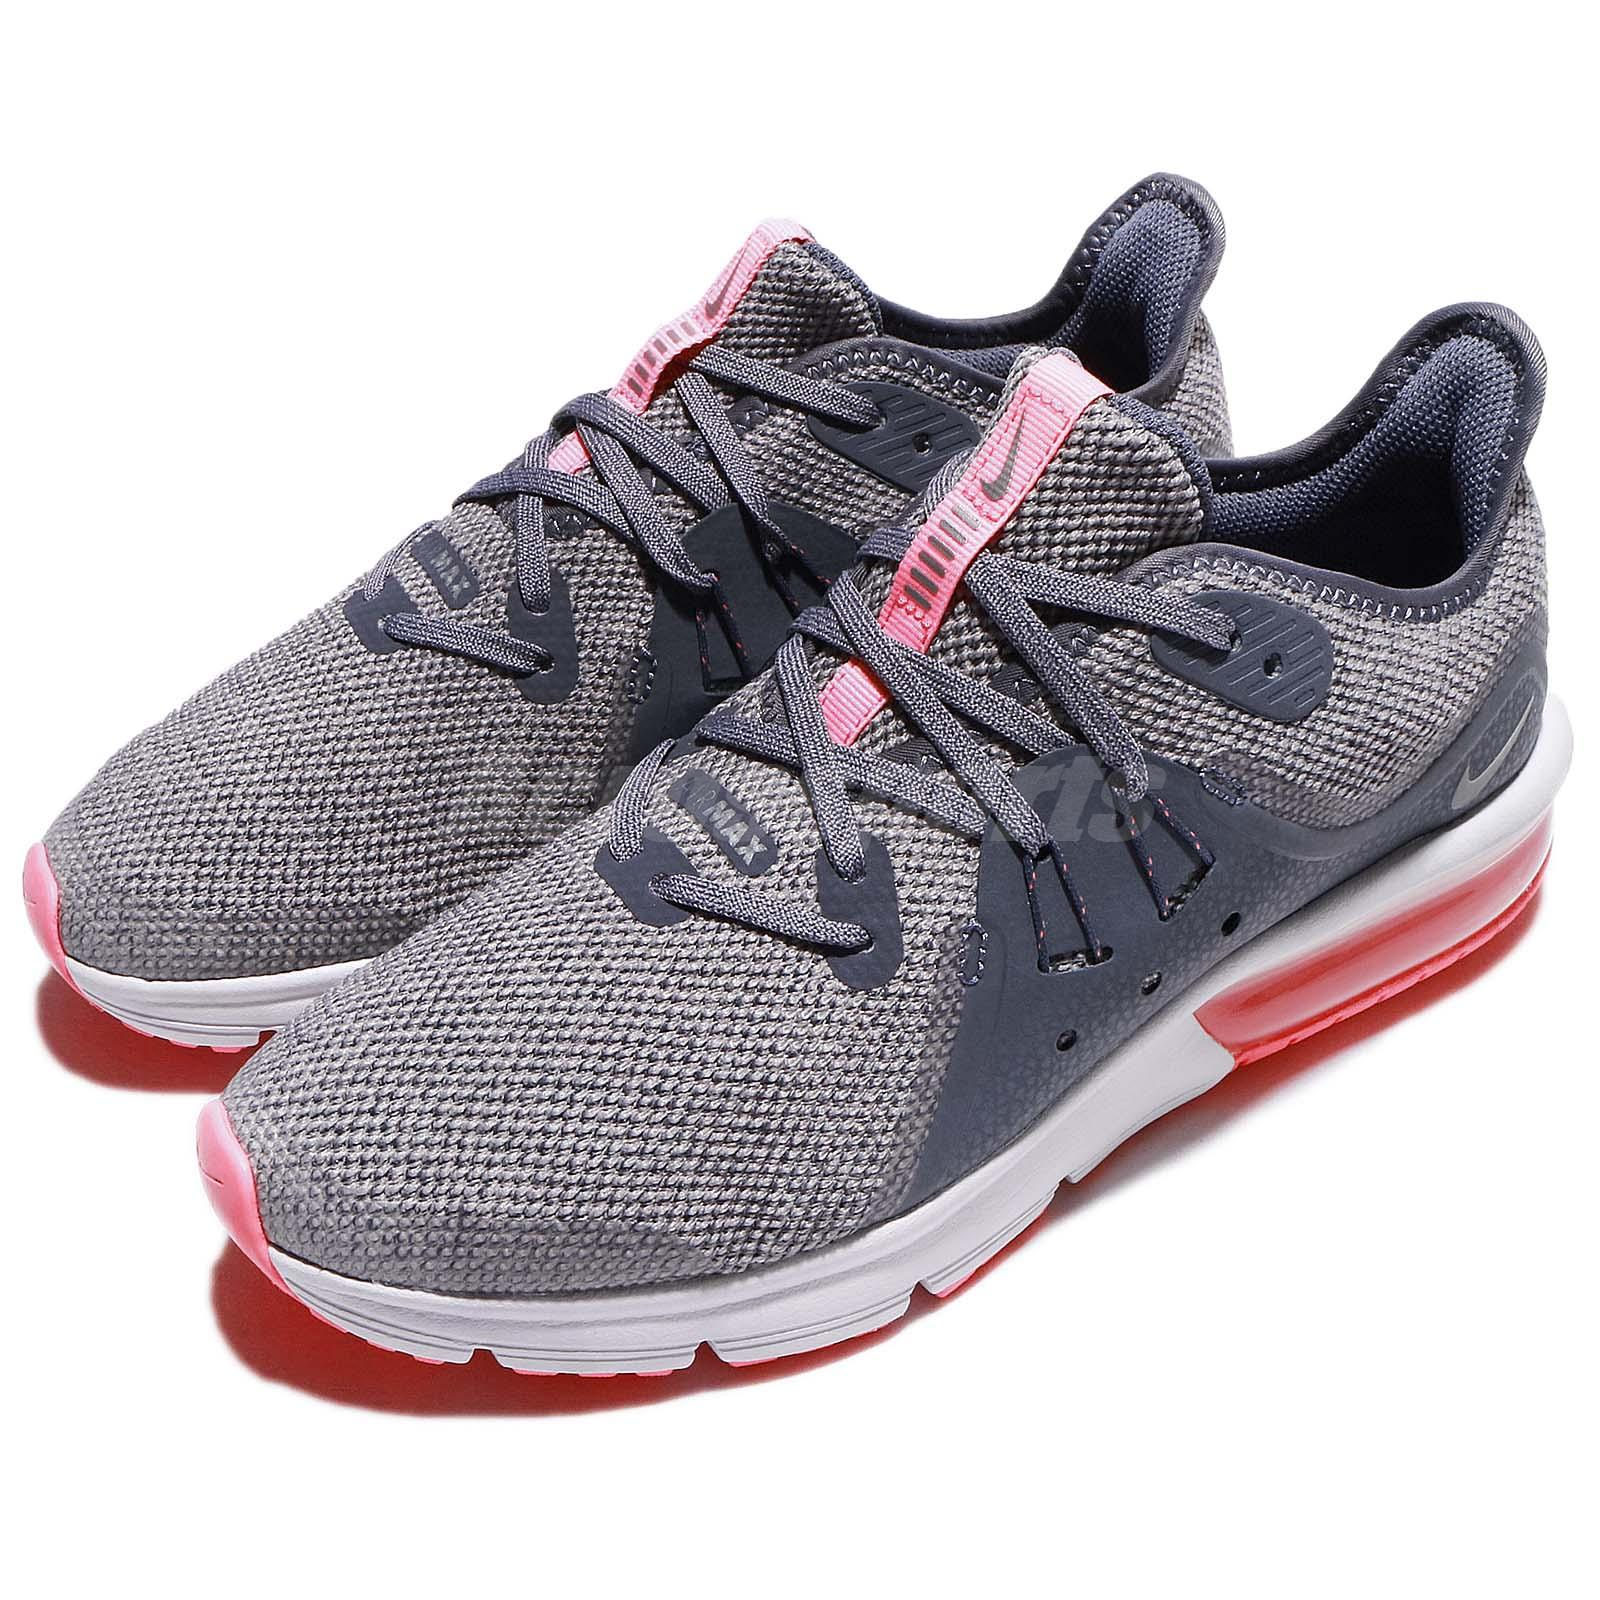 Details about Nike Air Max Sequent 3 GS Grey Pink Youth Kids Womens Running Shoes 922885 003